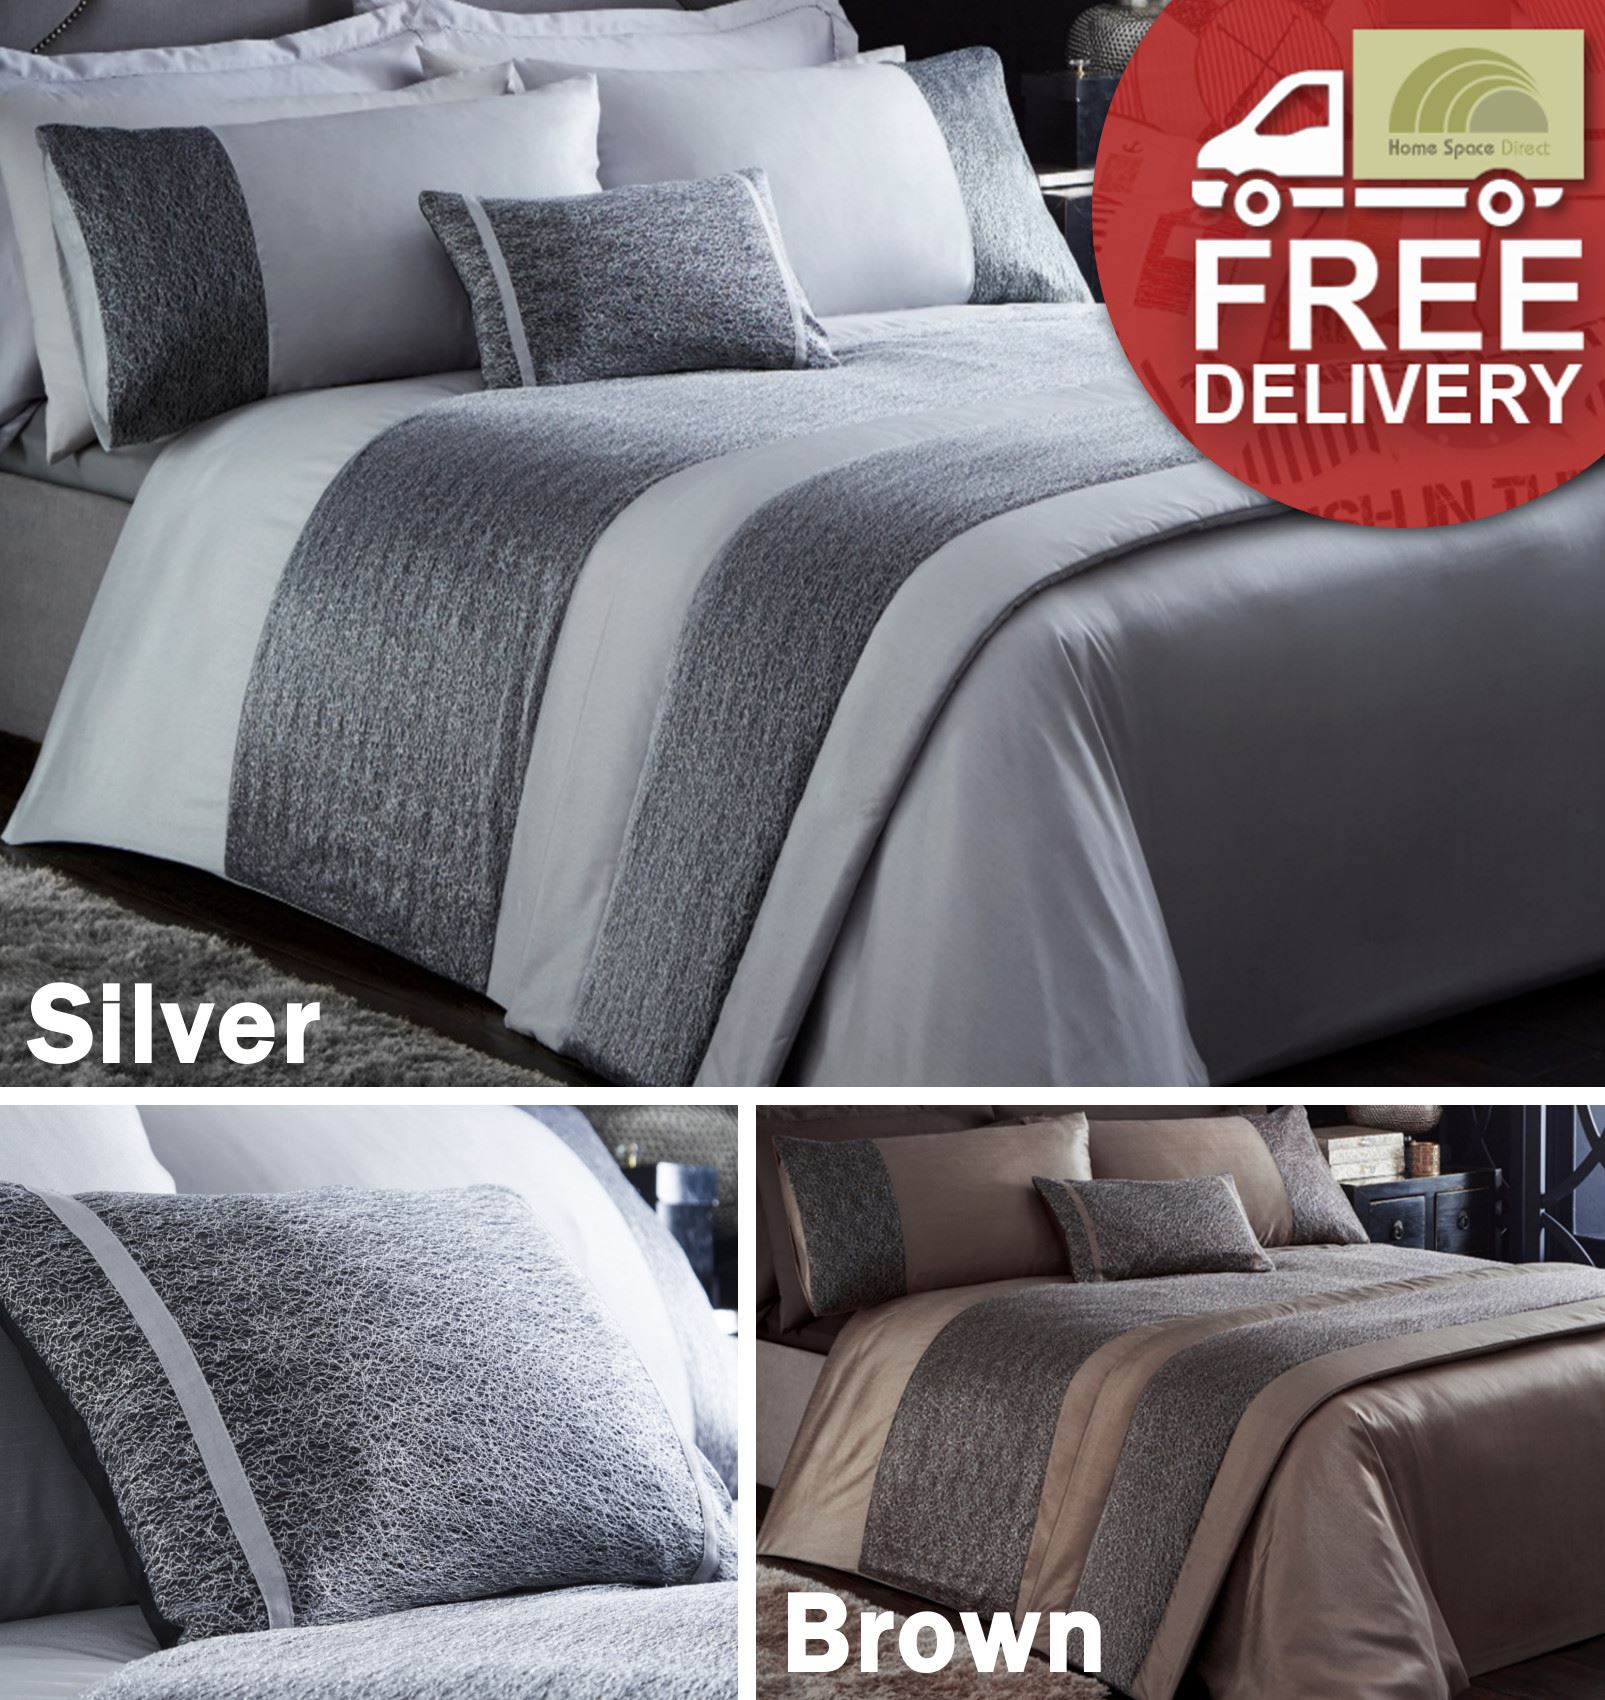 Details About Modern Duvet Cover 2 Pillowcase Bedding Set Or Cushion Or Bed Runner Stylish